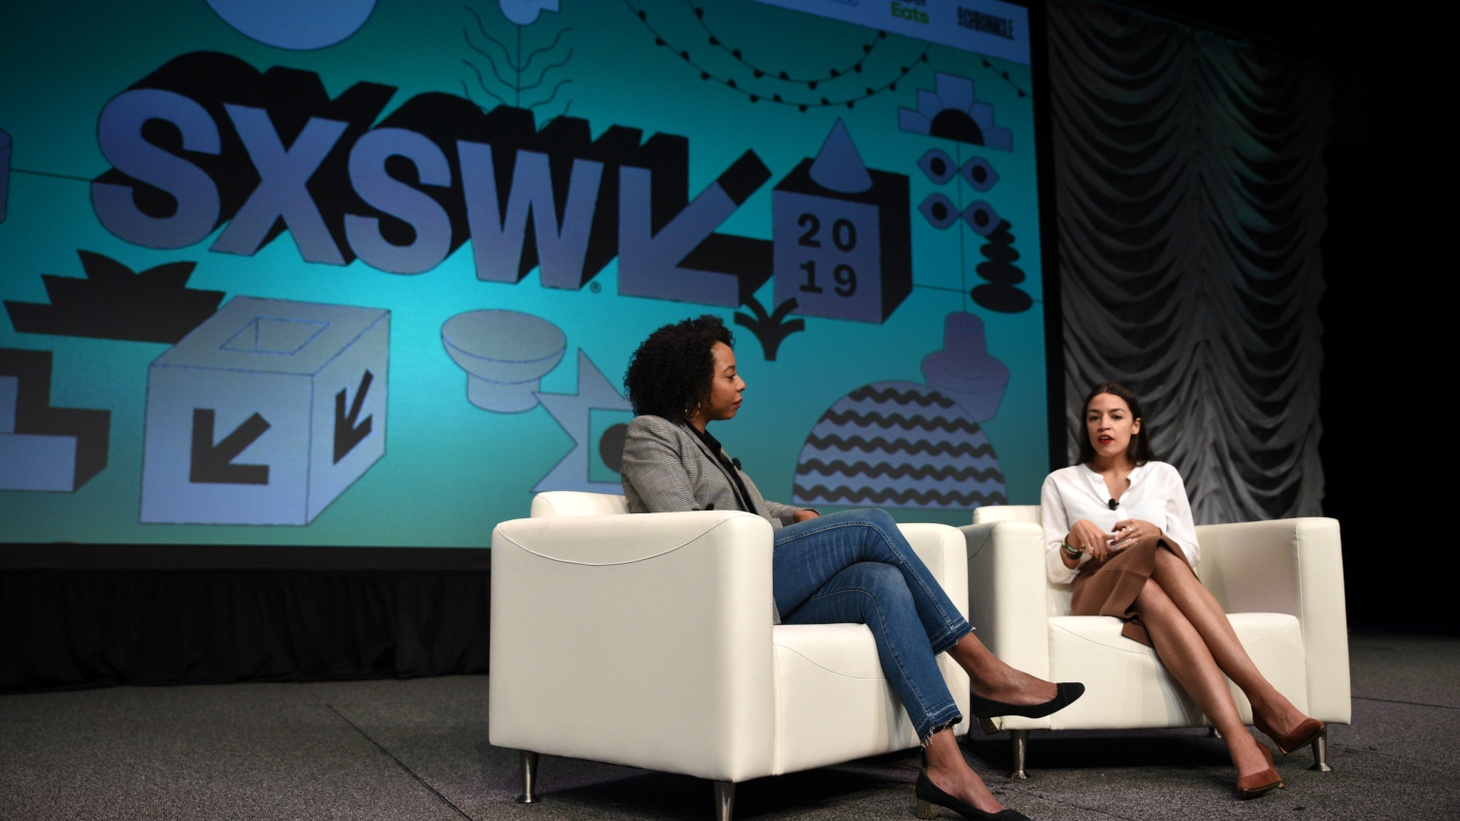 U.S. Congresswoman Alexandria Ocasio-Cortez speaks about the first few months of her tenure in Congress with Briahna Gray at the South by Southwest (SXSW) conference and festivals in Austin, Texas, U.S., March 9, 2019.